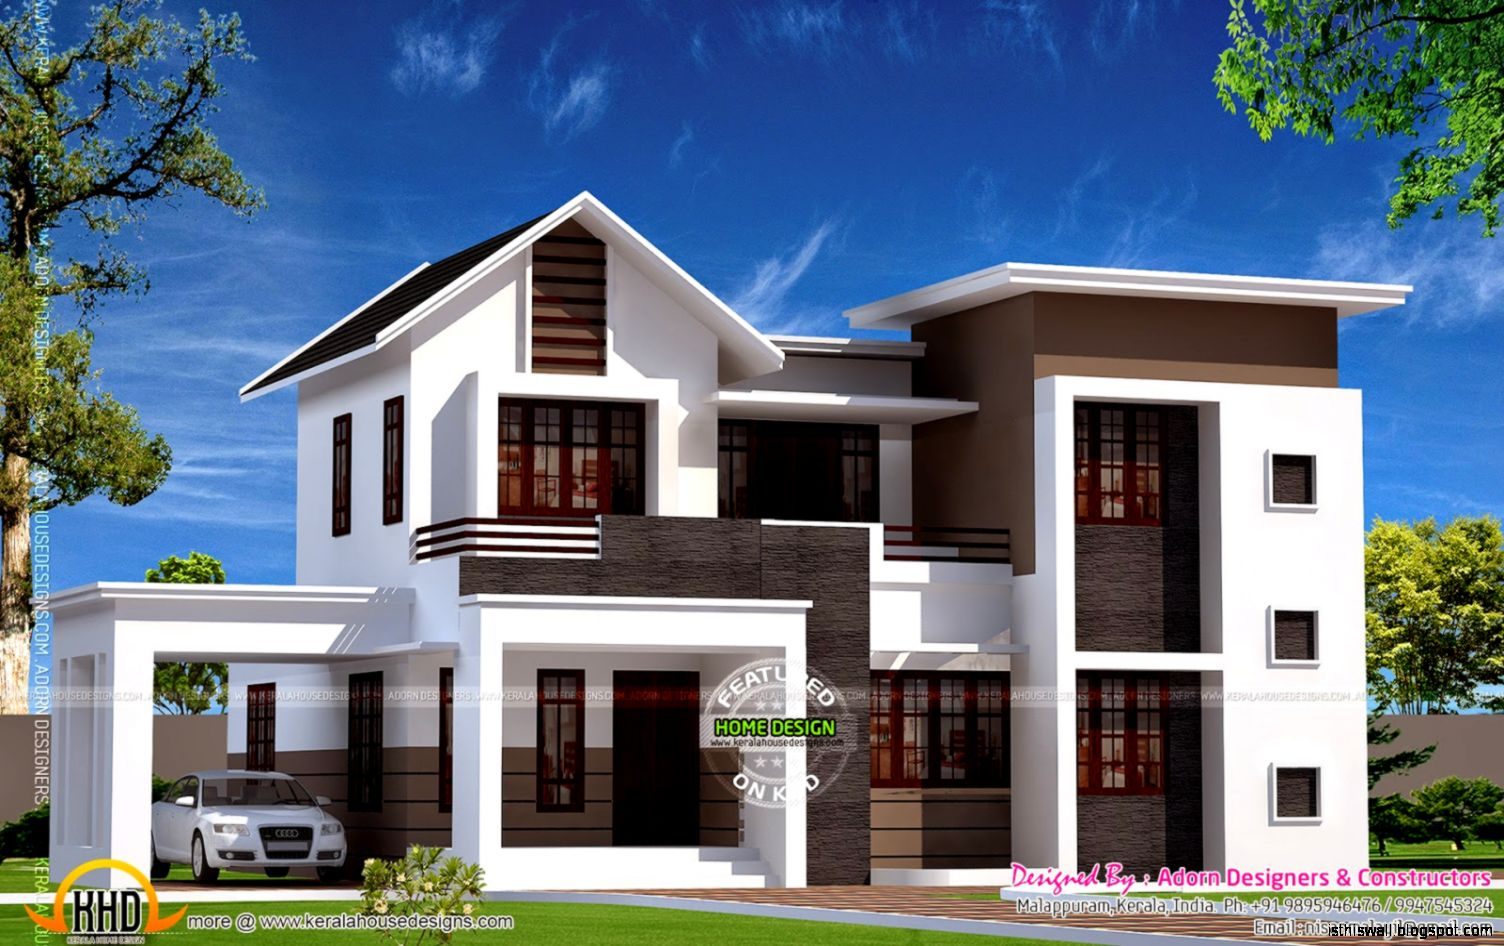 Home houses design this wallpapers for Indian house model